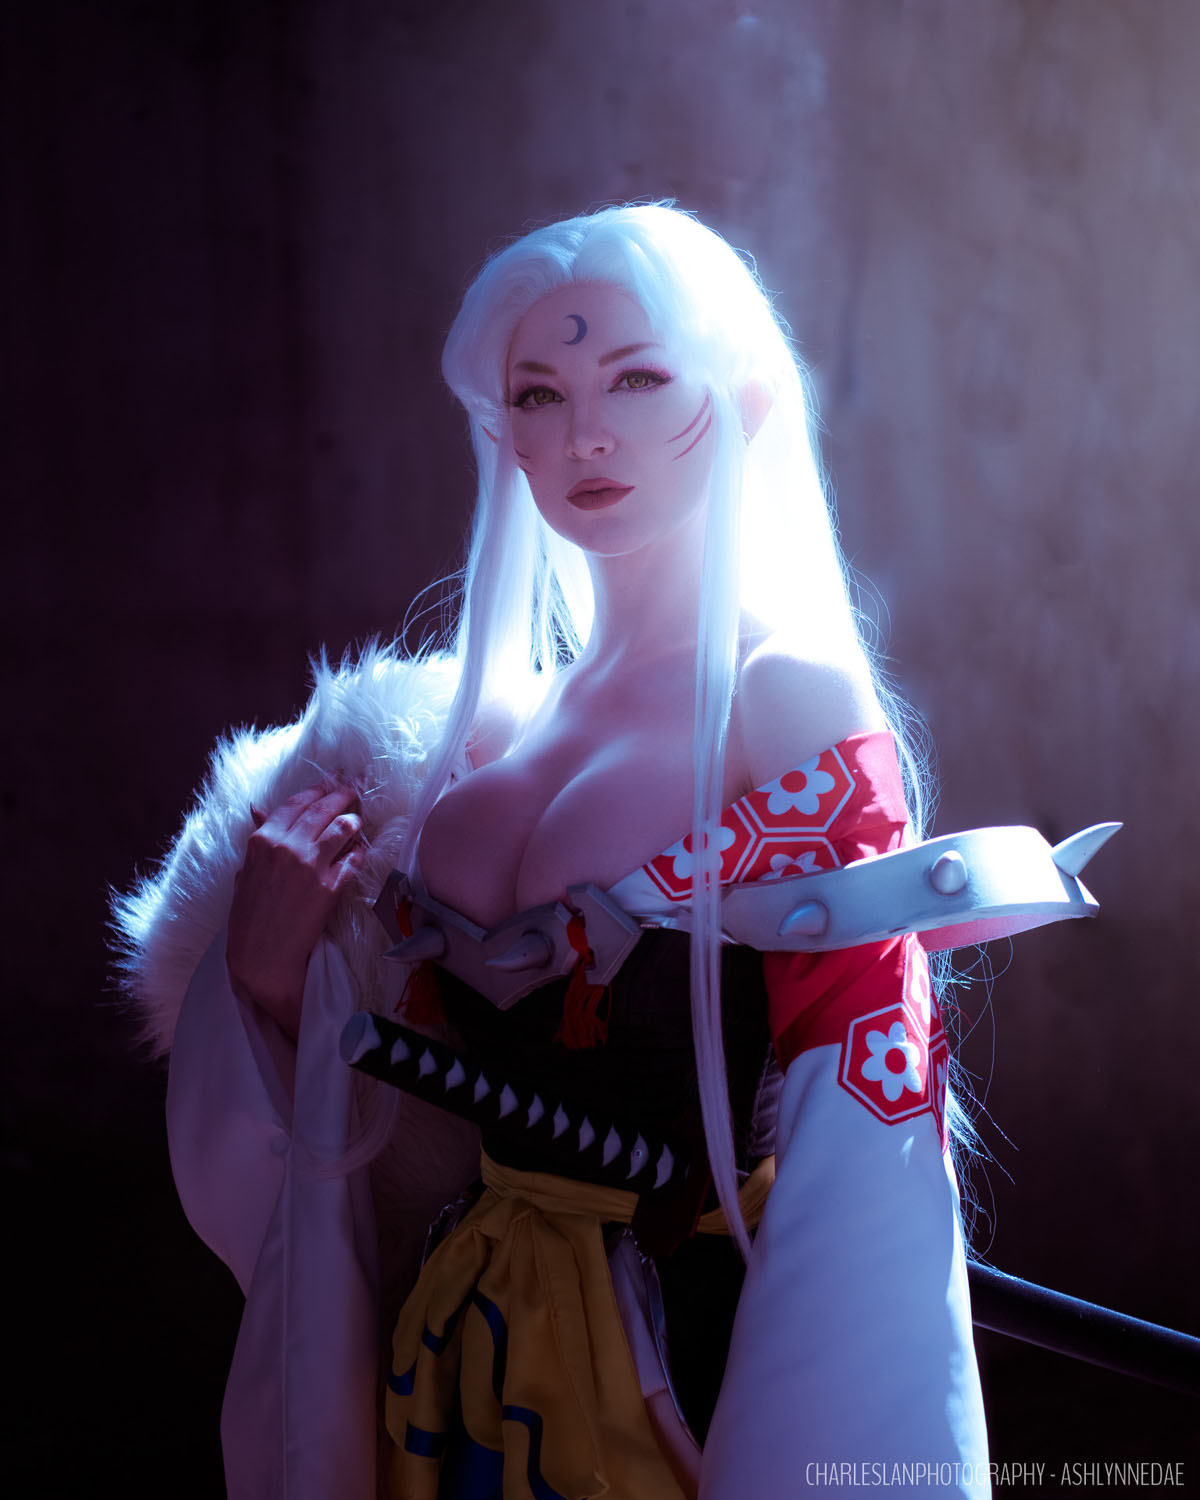 Sesshomaur from Inuyasha - photo by Charles Lan